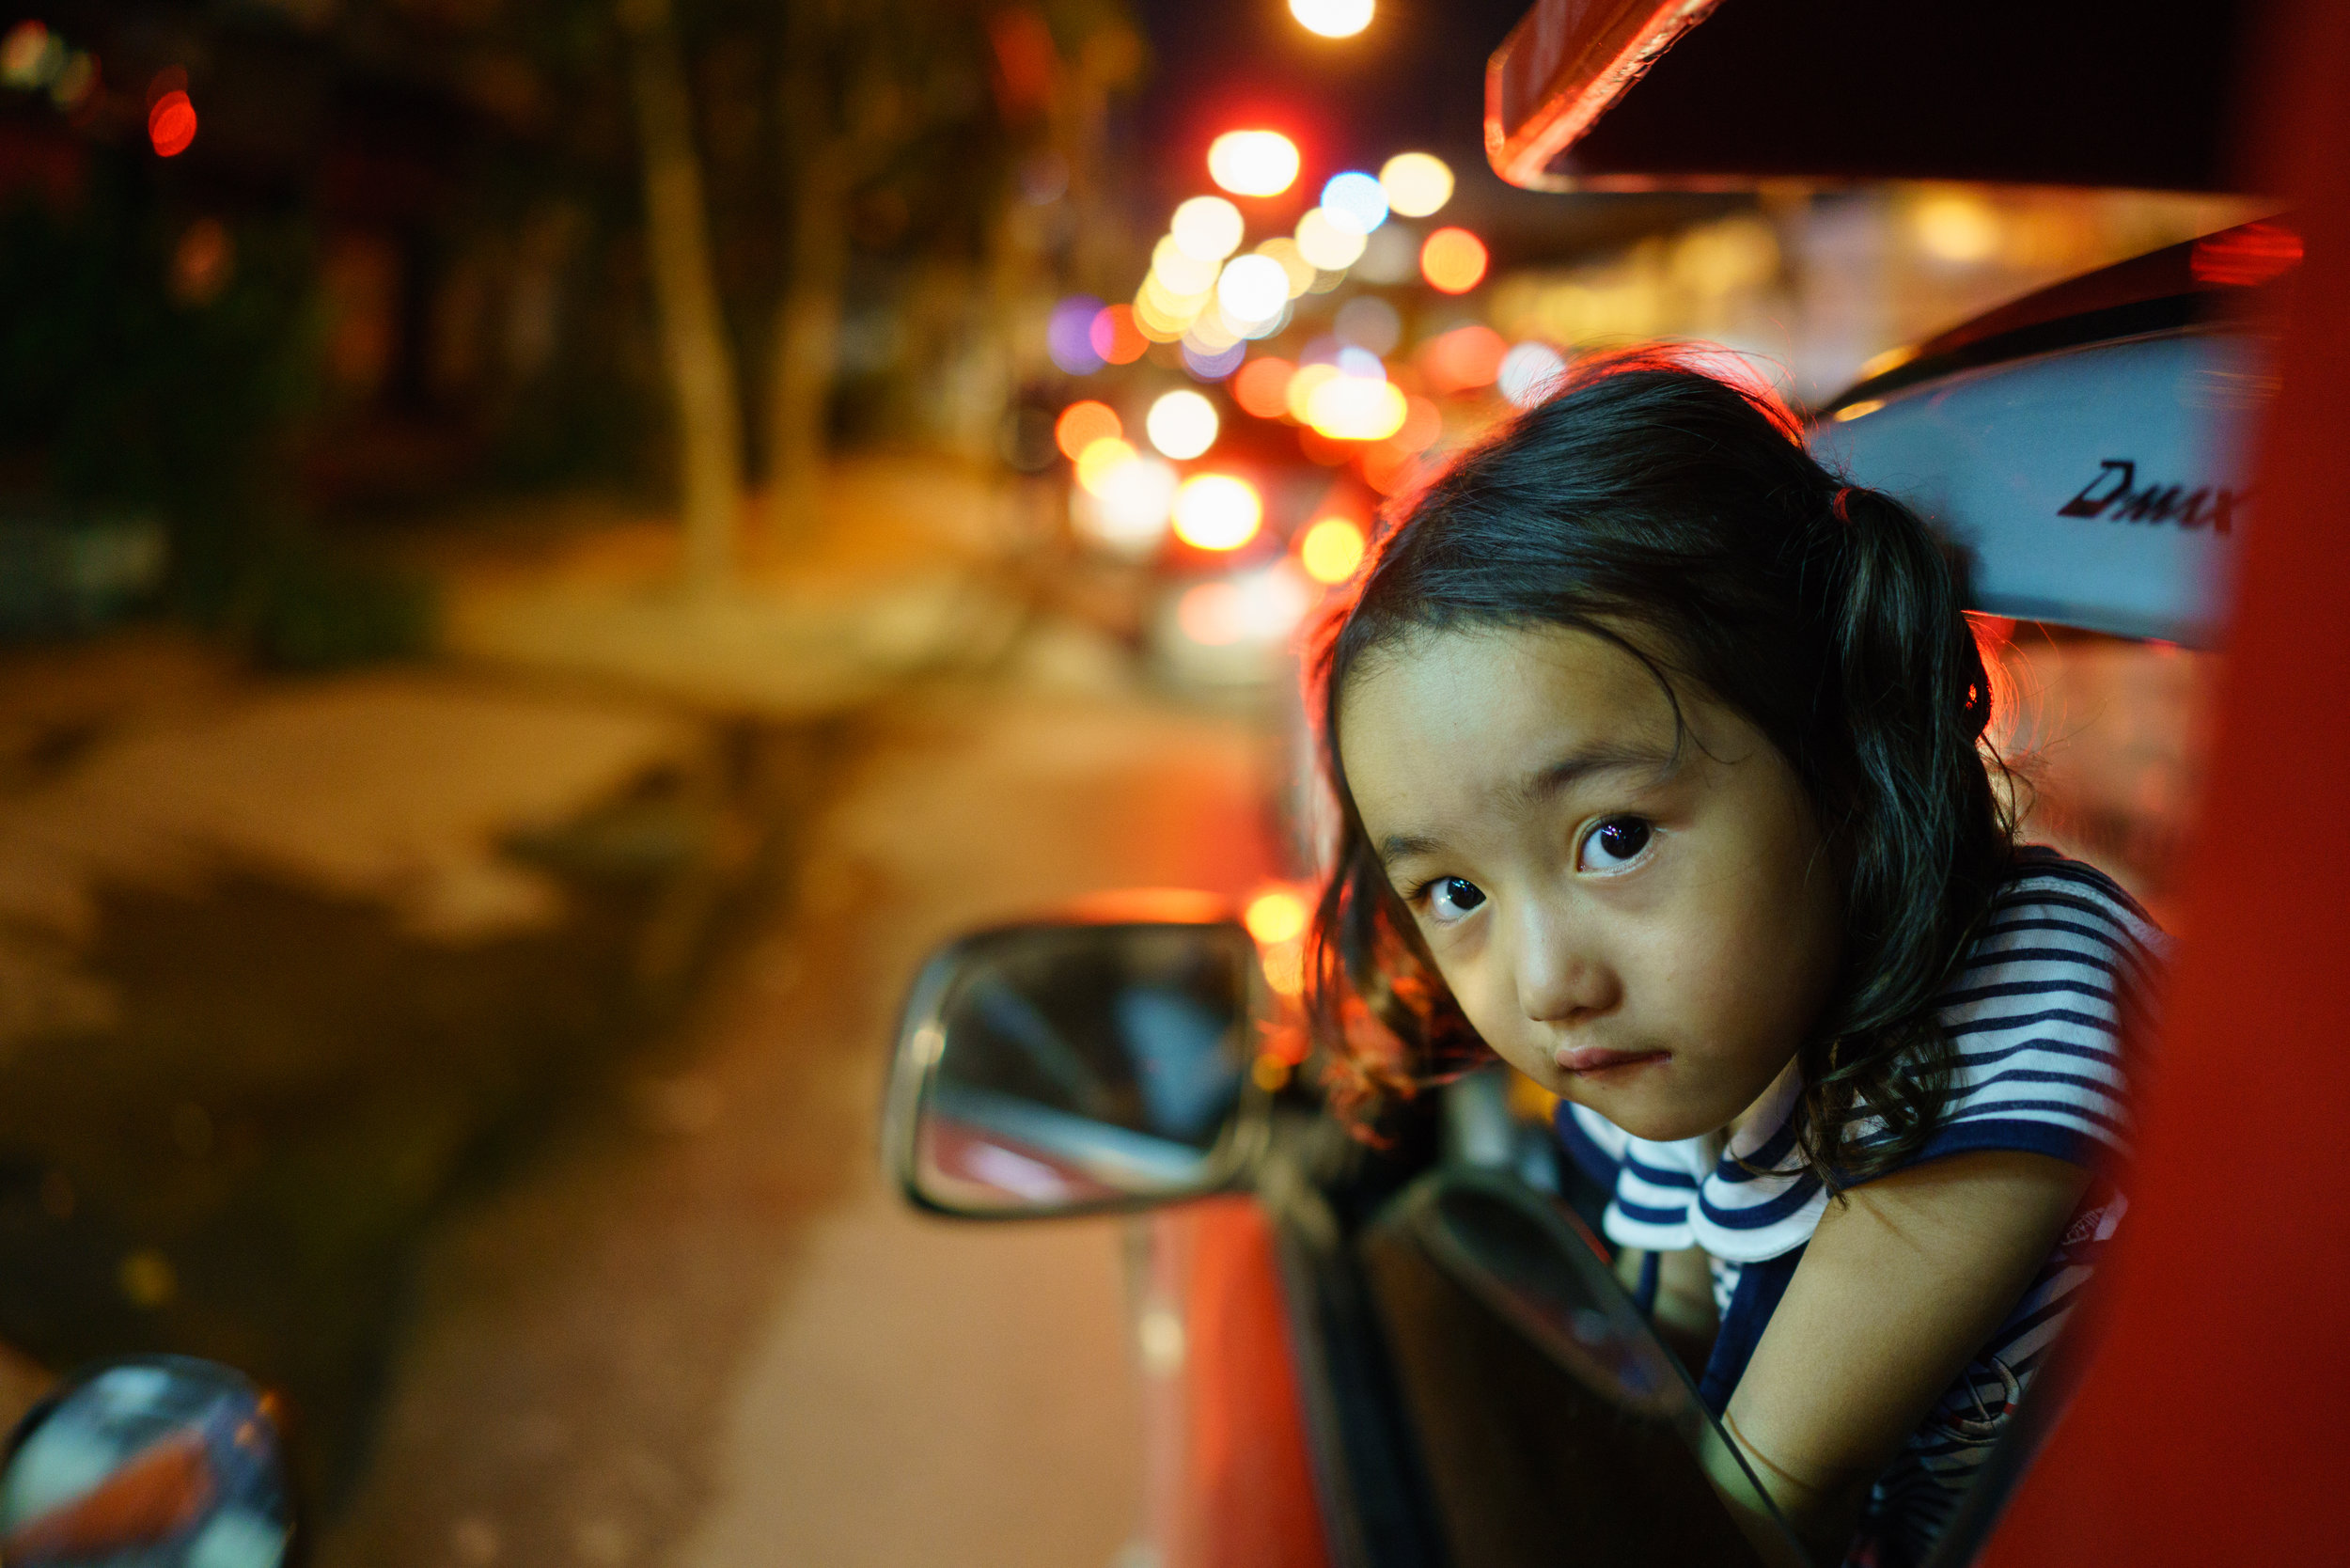 Often you'll find families of the  songthaew  driver sitting up front; here a young girl plays peekaboo with Prem from the front seat